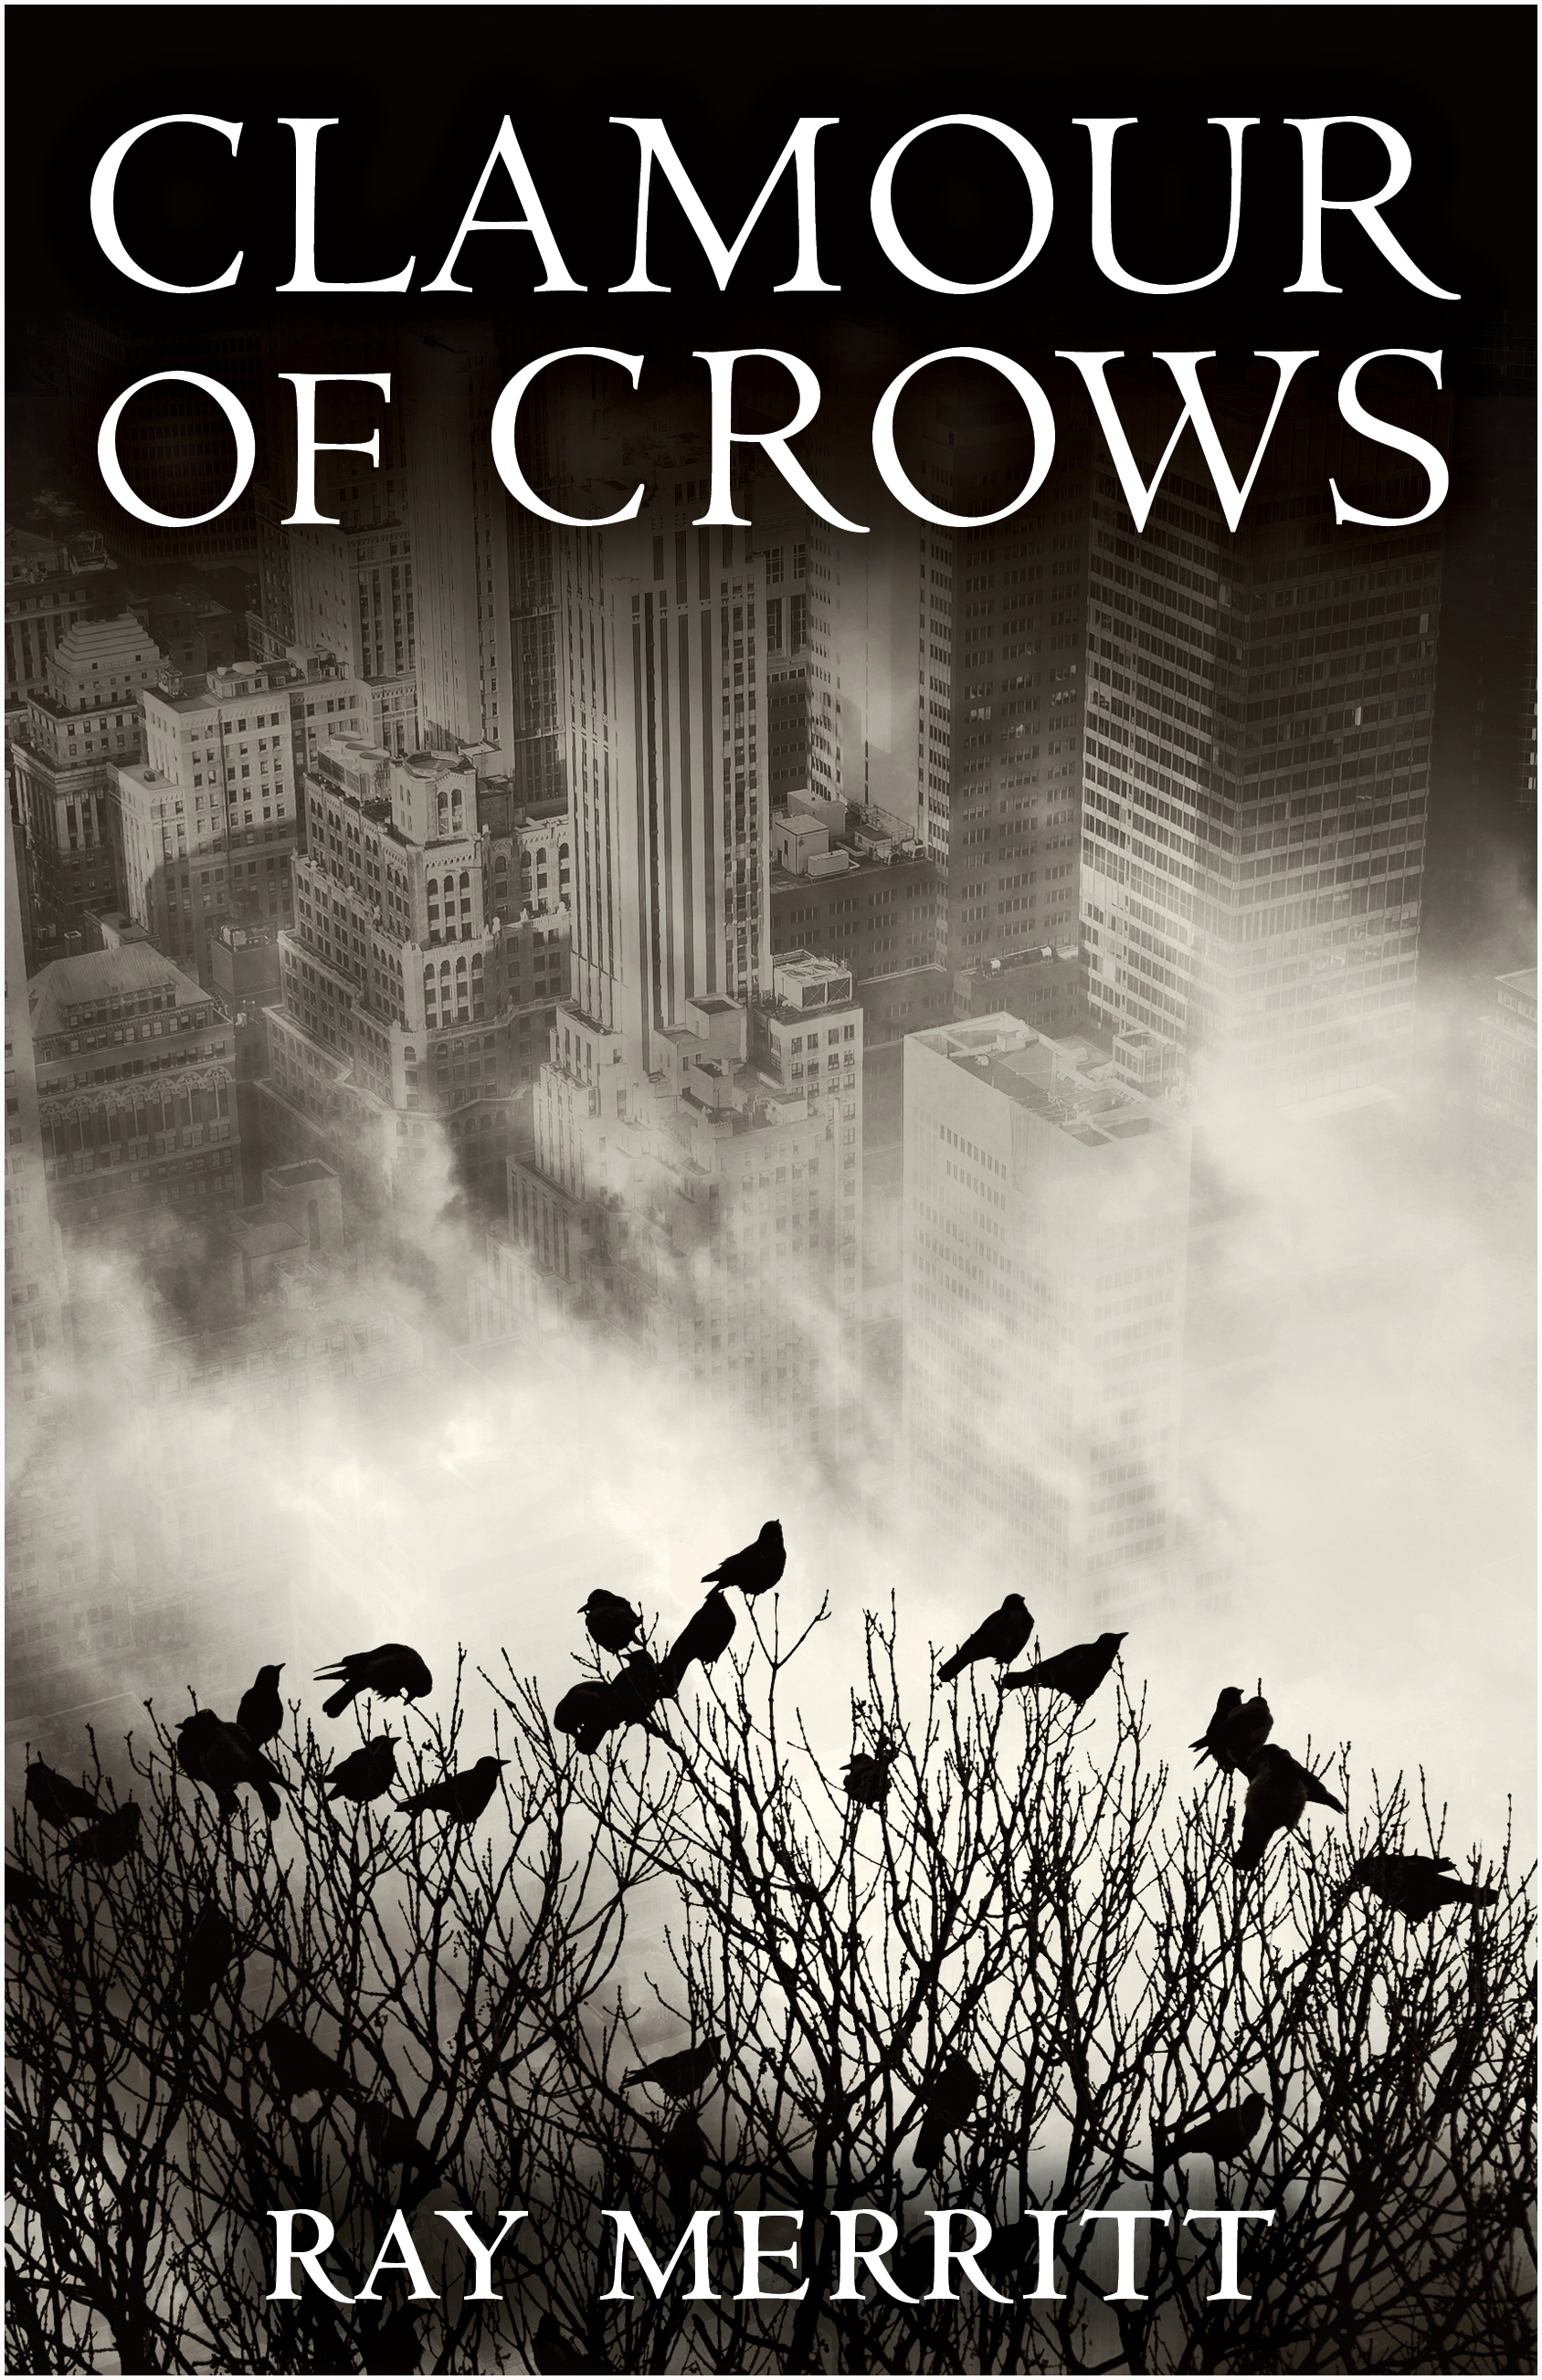 clamour of crows.jpg